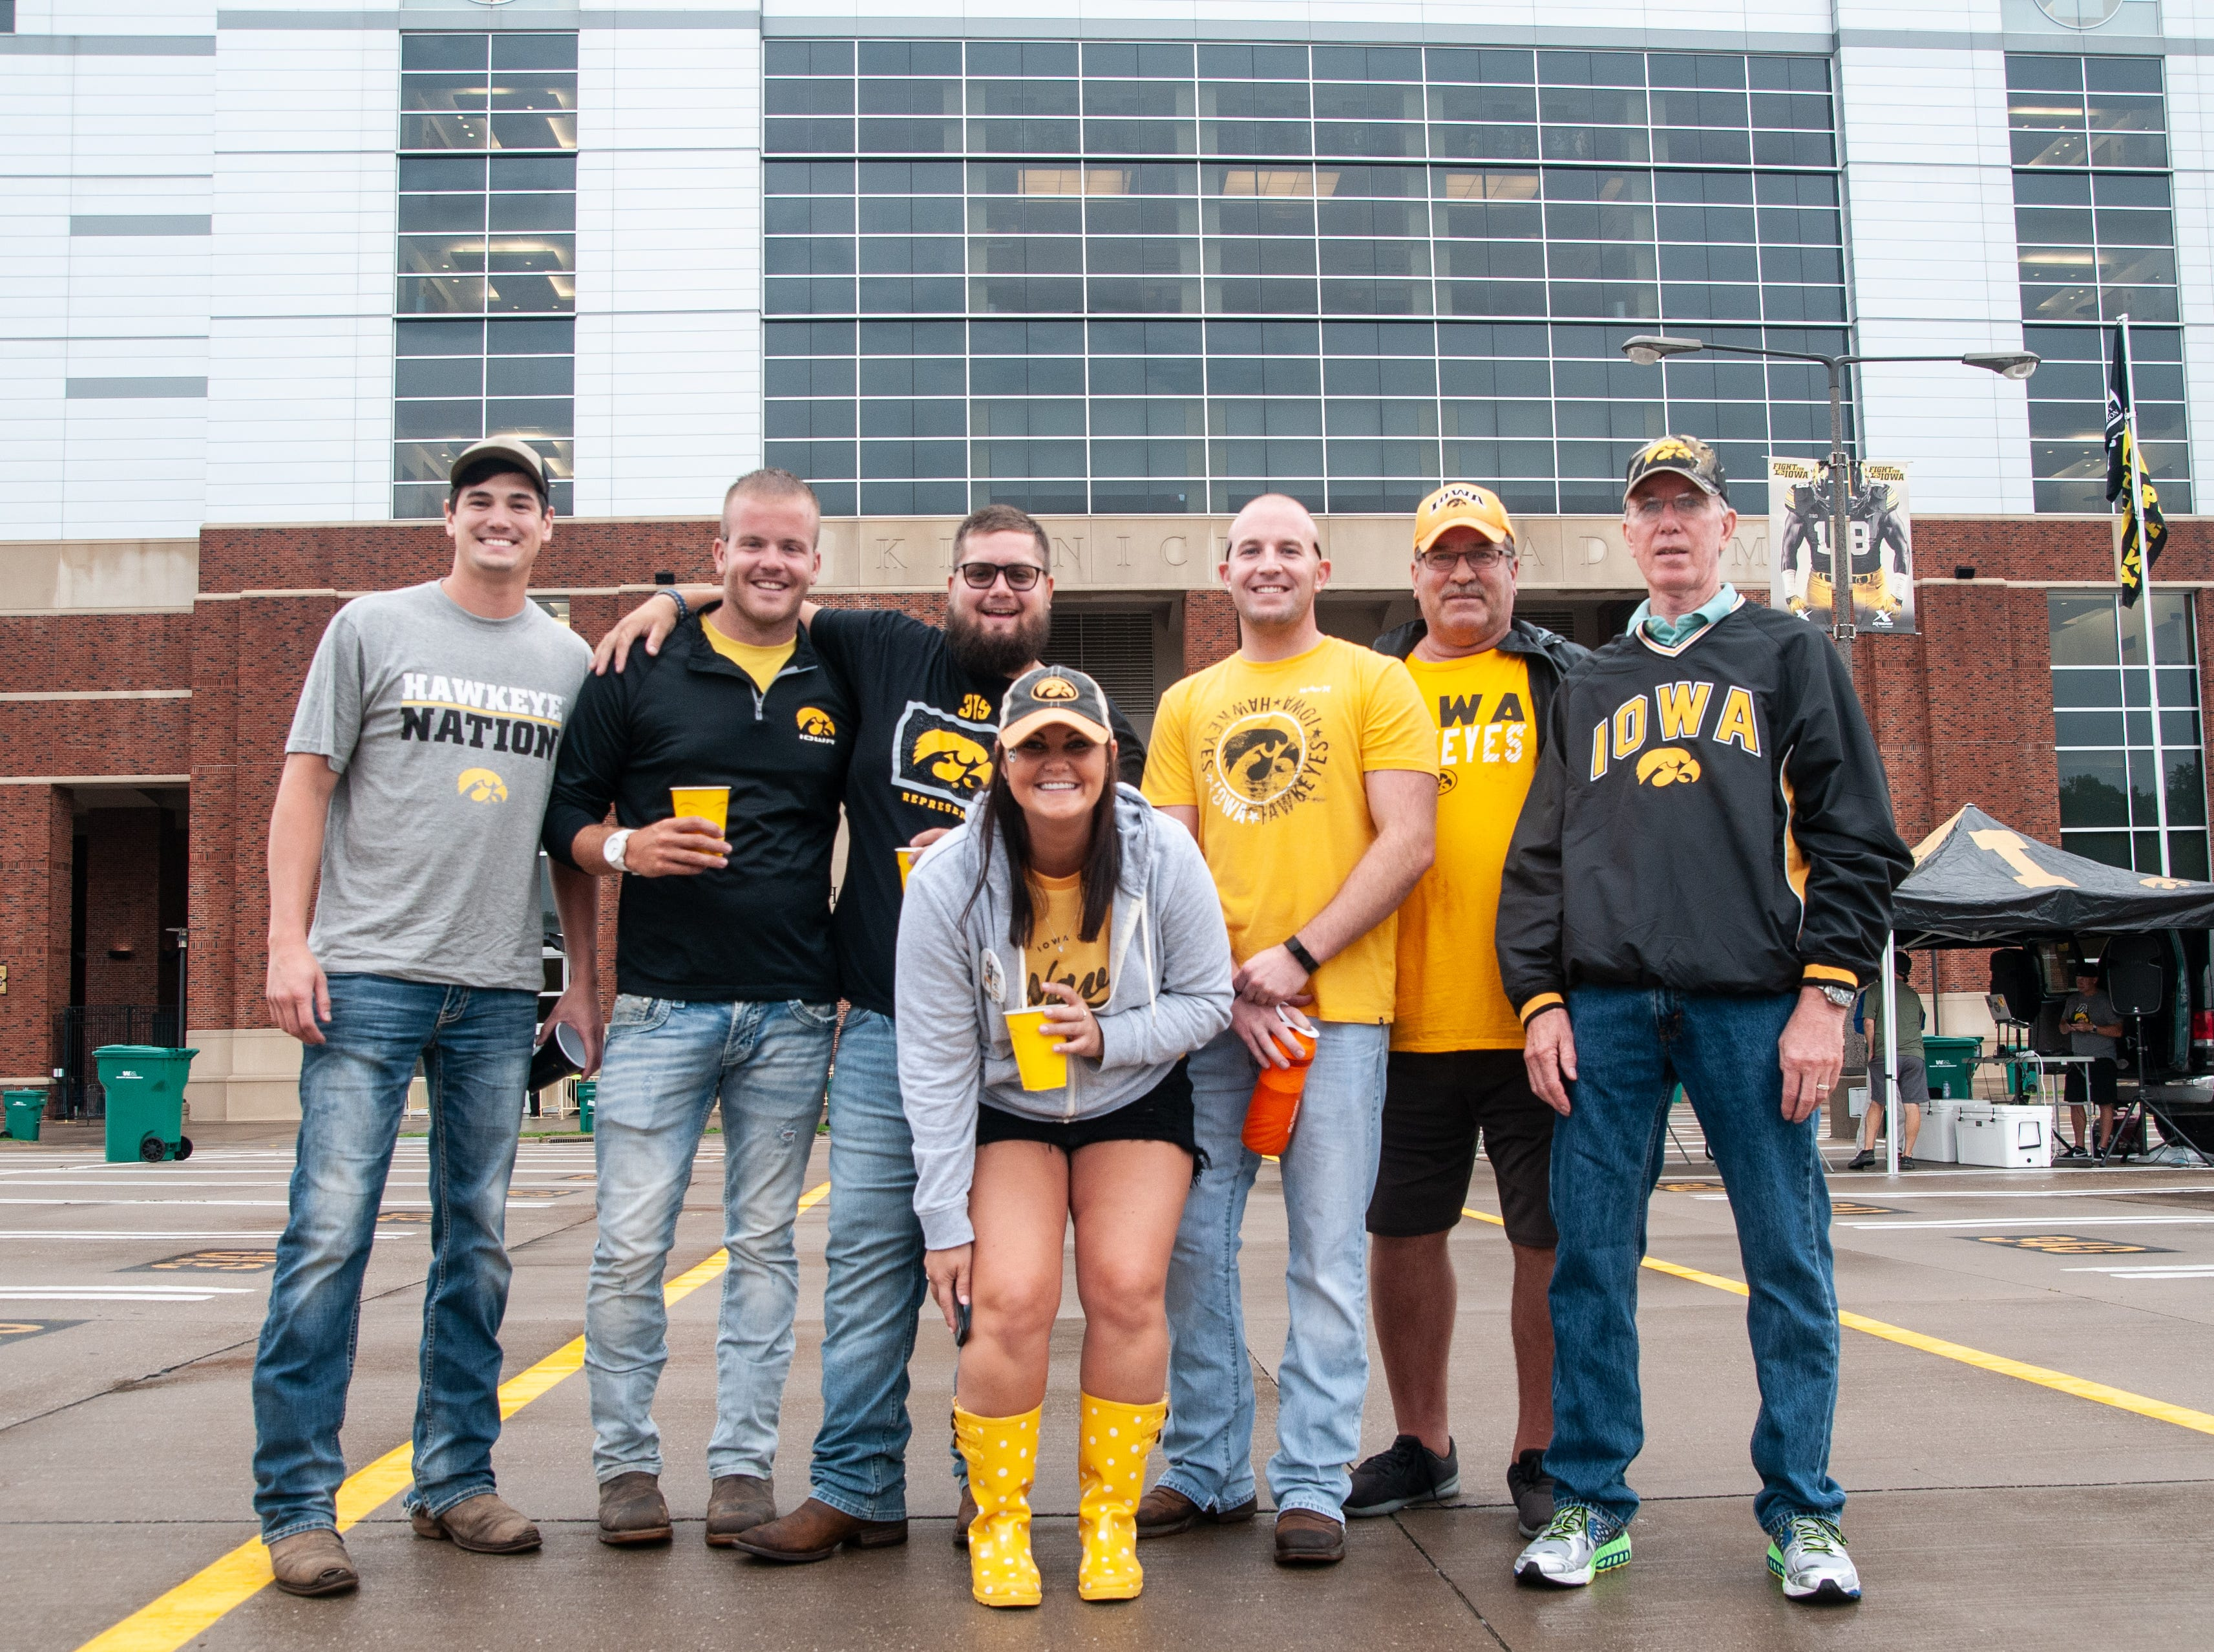 Rastetter family and friends, of Guttenberg, Saturday, Sept. 1, 2018, while tailgating before the Iowa game against Northern Illinois in Iowa City.